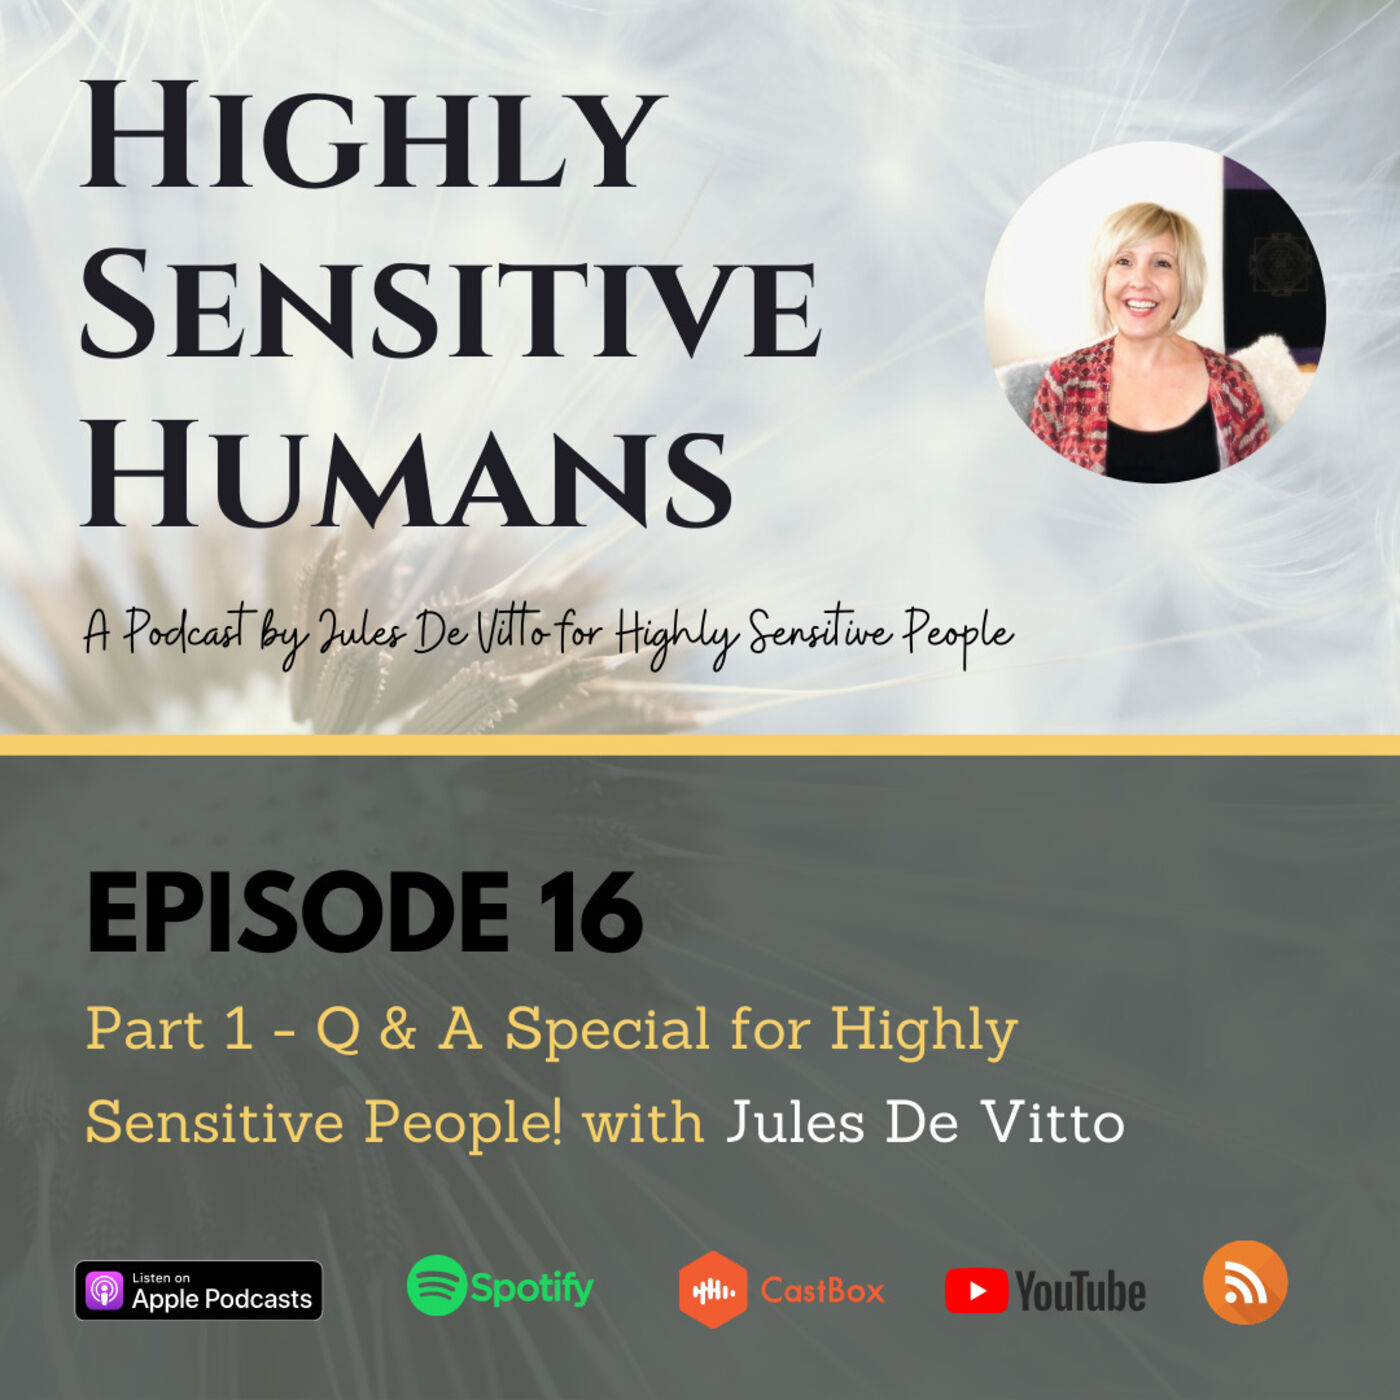 Part 1 - Q & A Special for Highly Sensitive People! with Jules De Vitto